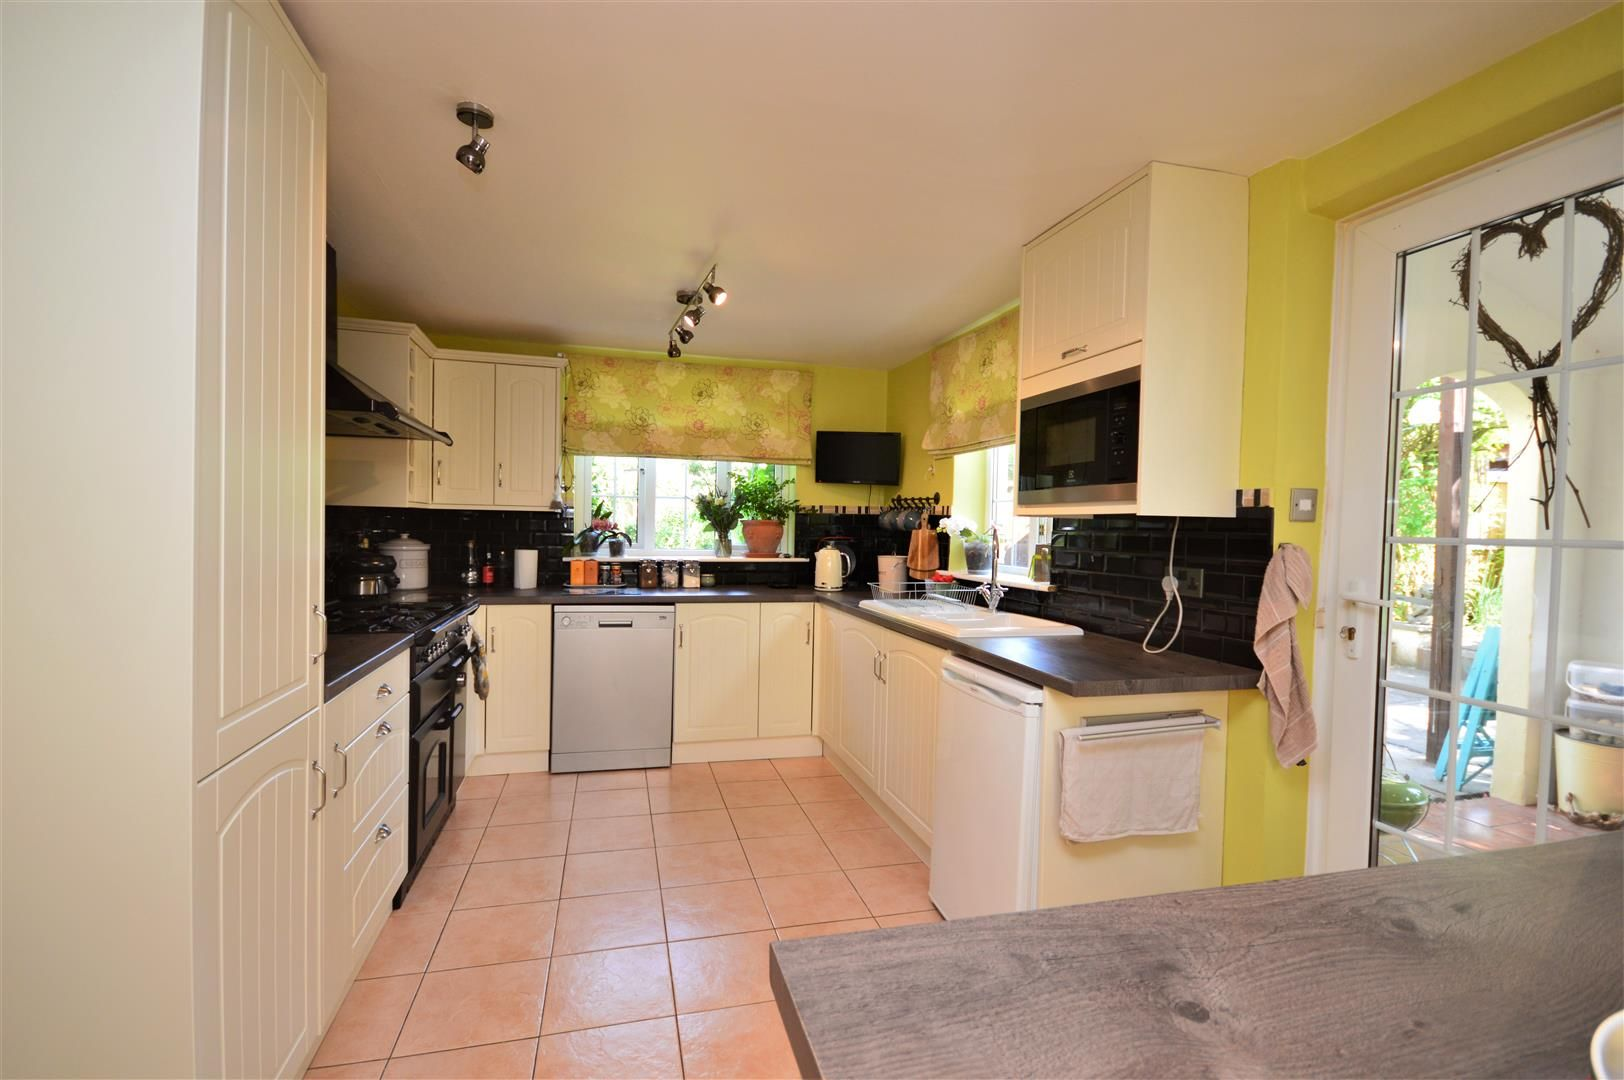 3 bed semi-detached for sale in Stretton Sugwas 7